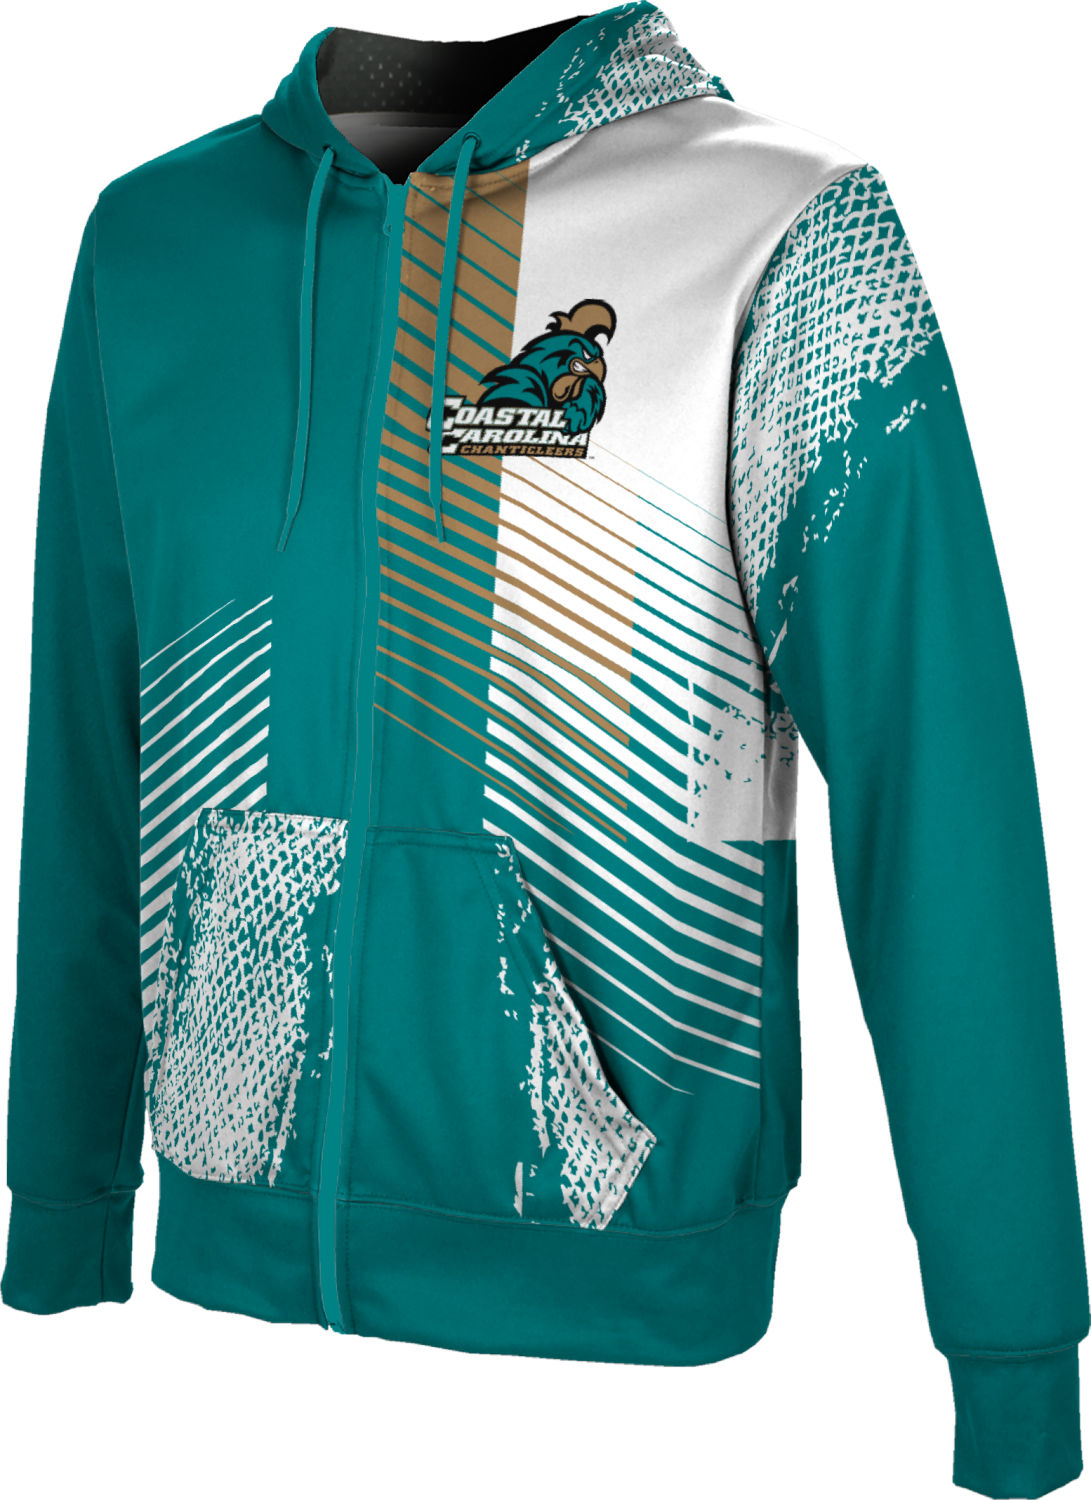 ProSphere Boys' Coastal Carolina University Hustle Fullzip Hoodie